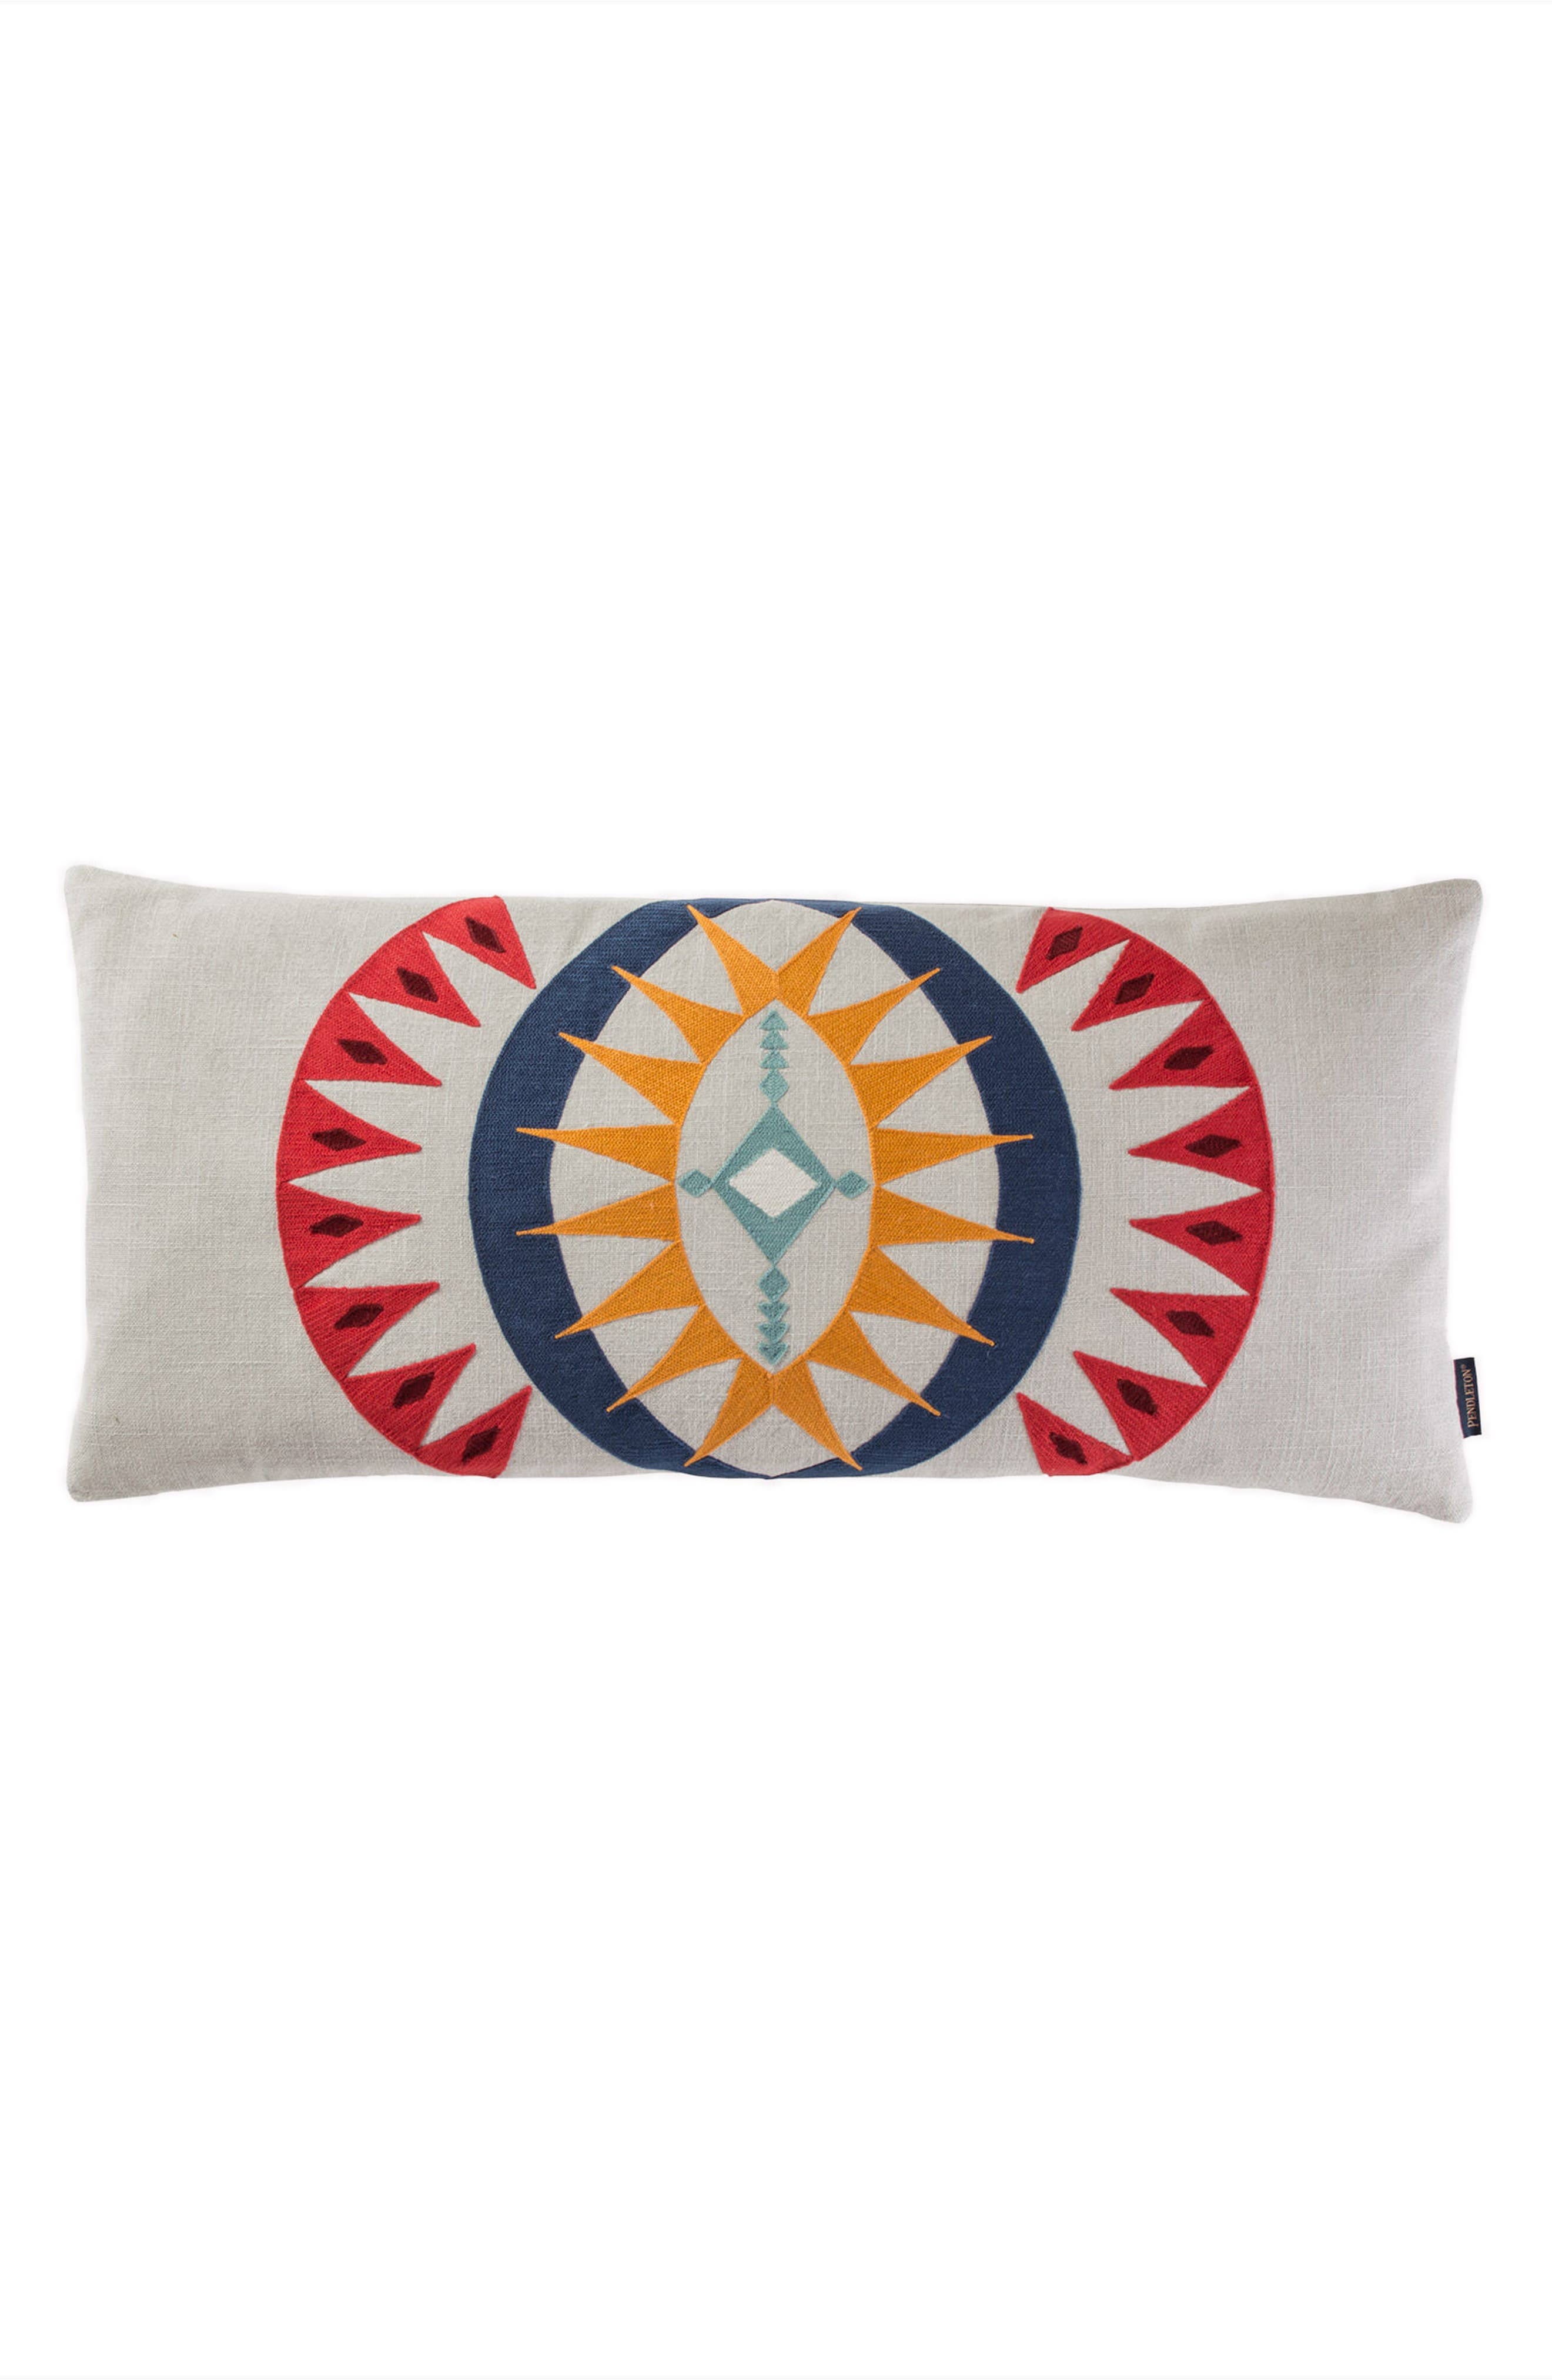 PENDLETON, Point Reyes Crewel Embroidered Accent Pillow, Main thumbnail 1, color, GREY MULTI